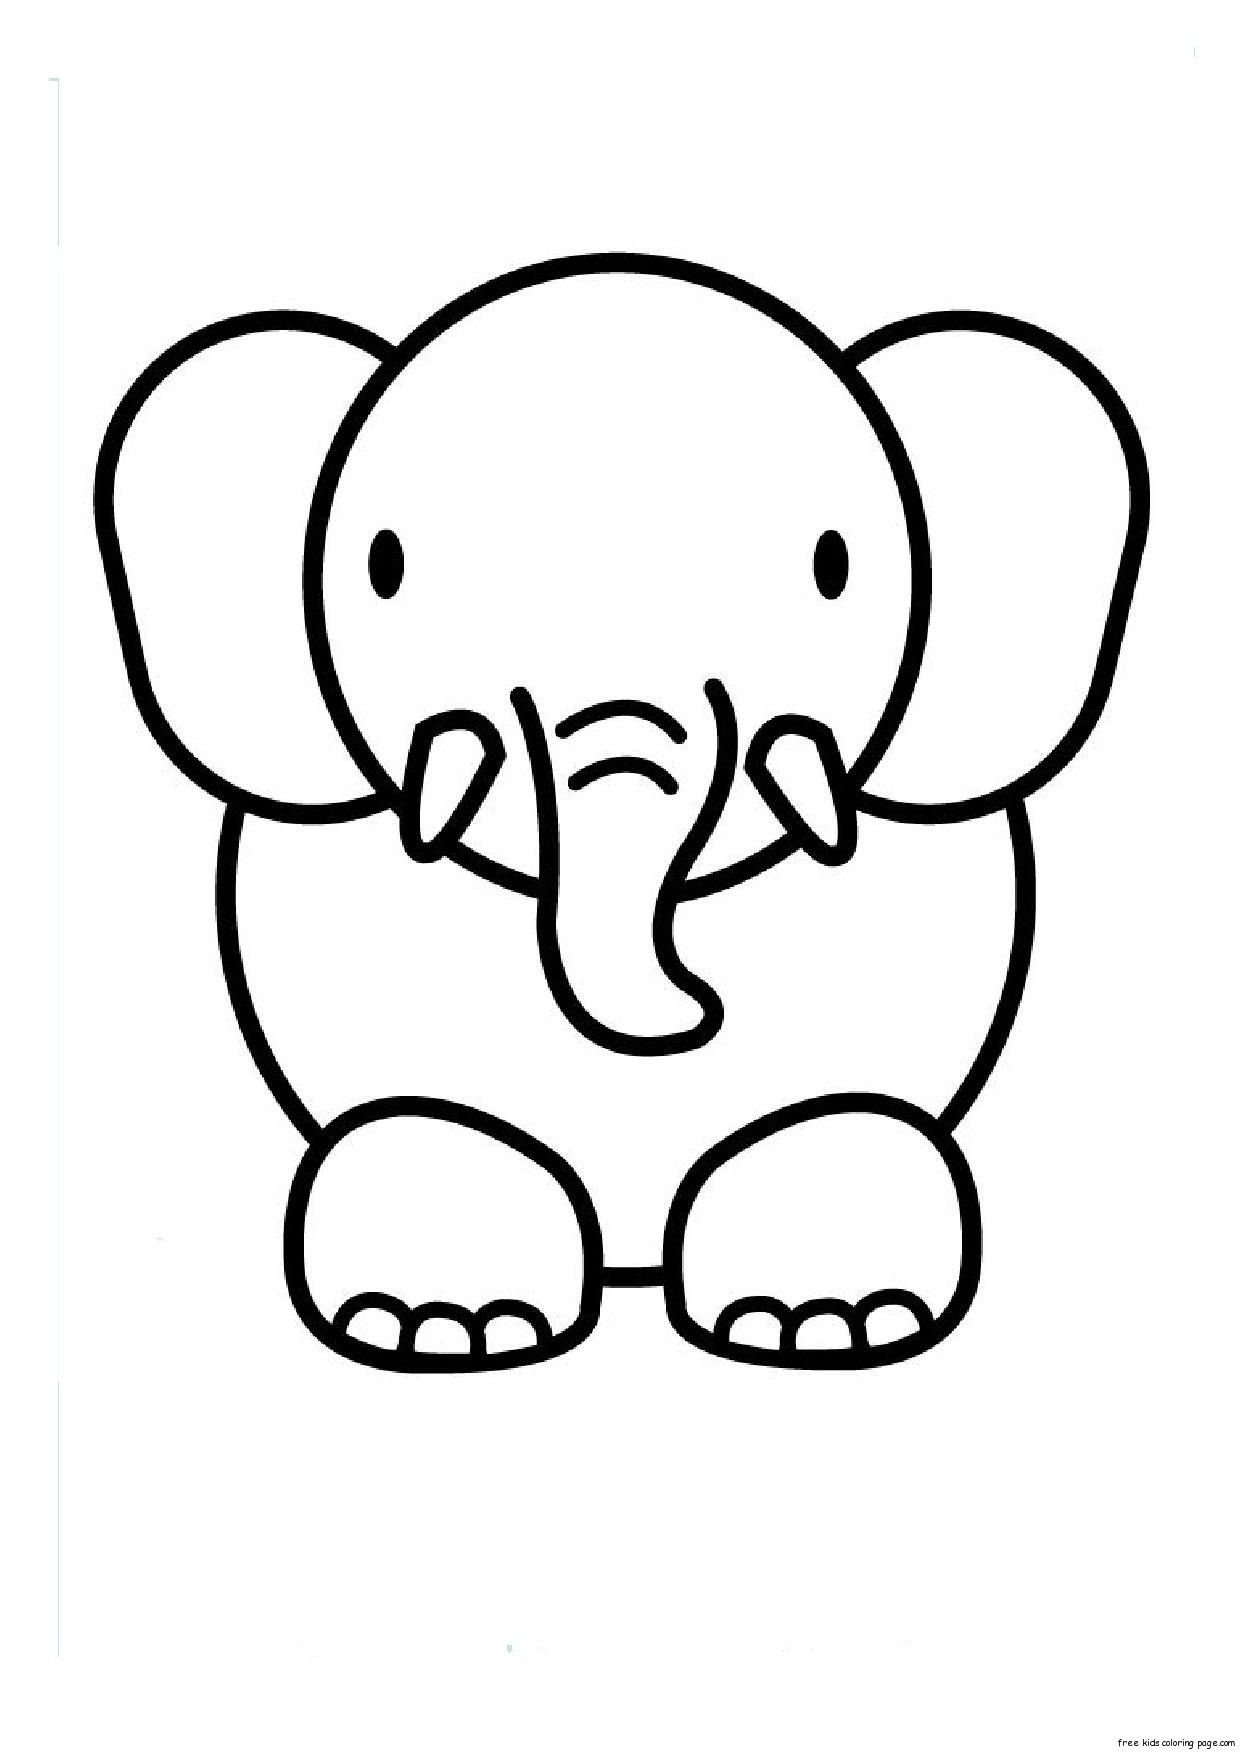 Cartoon Elephant Coloring Pages Widescreen 2 Hd Wallpapers